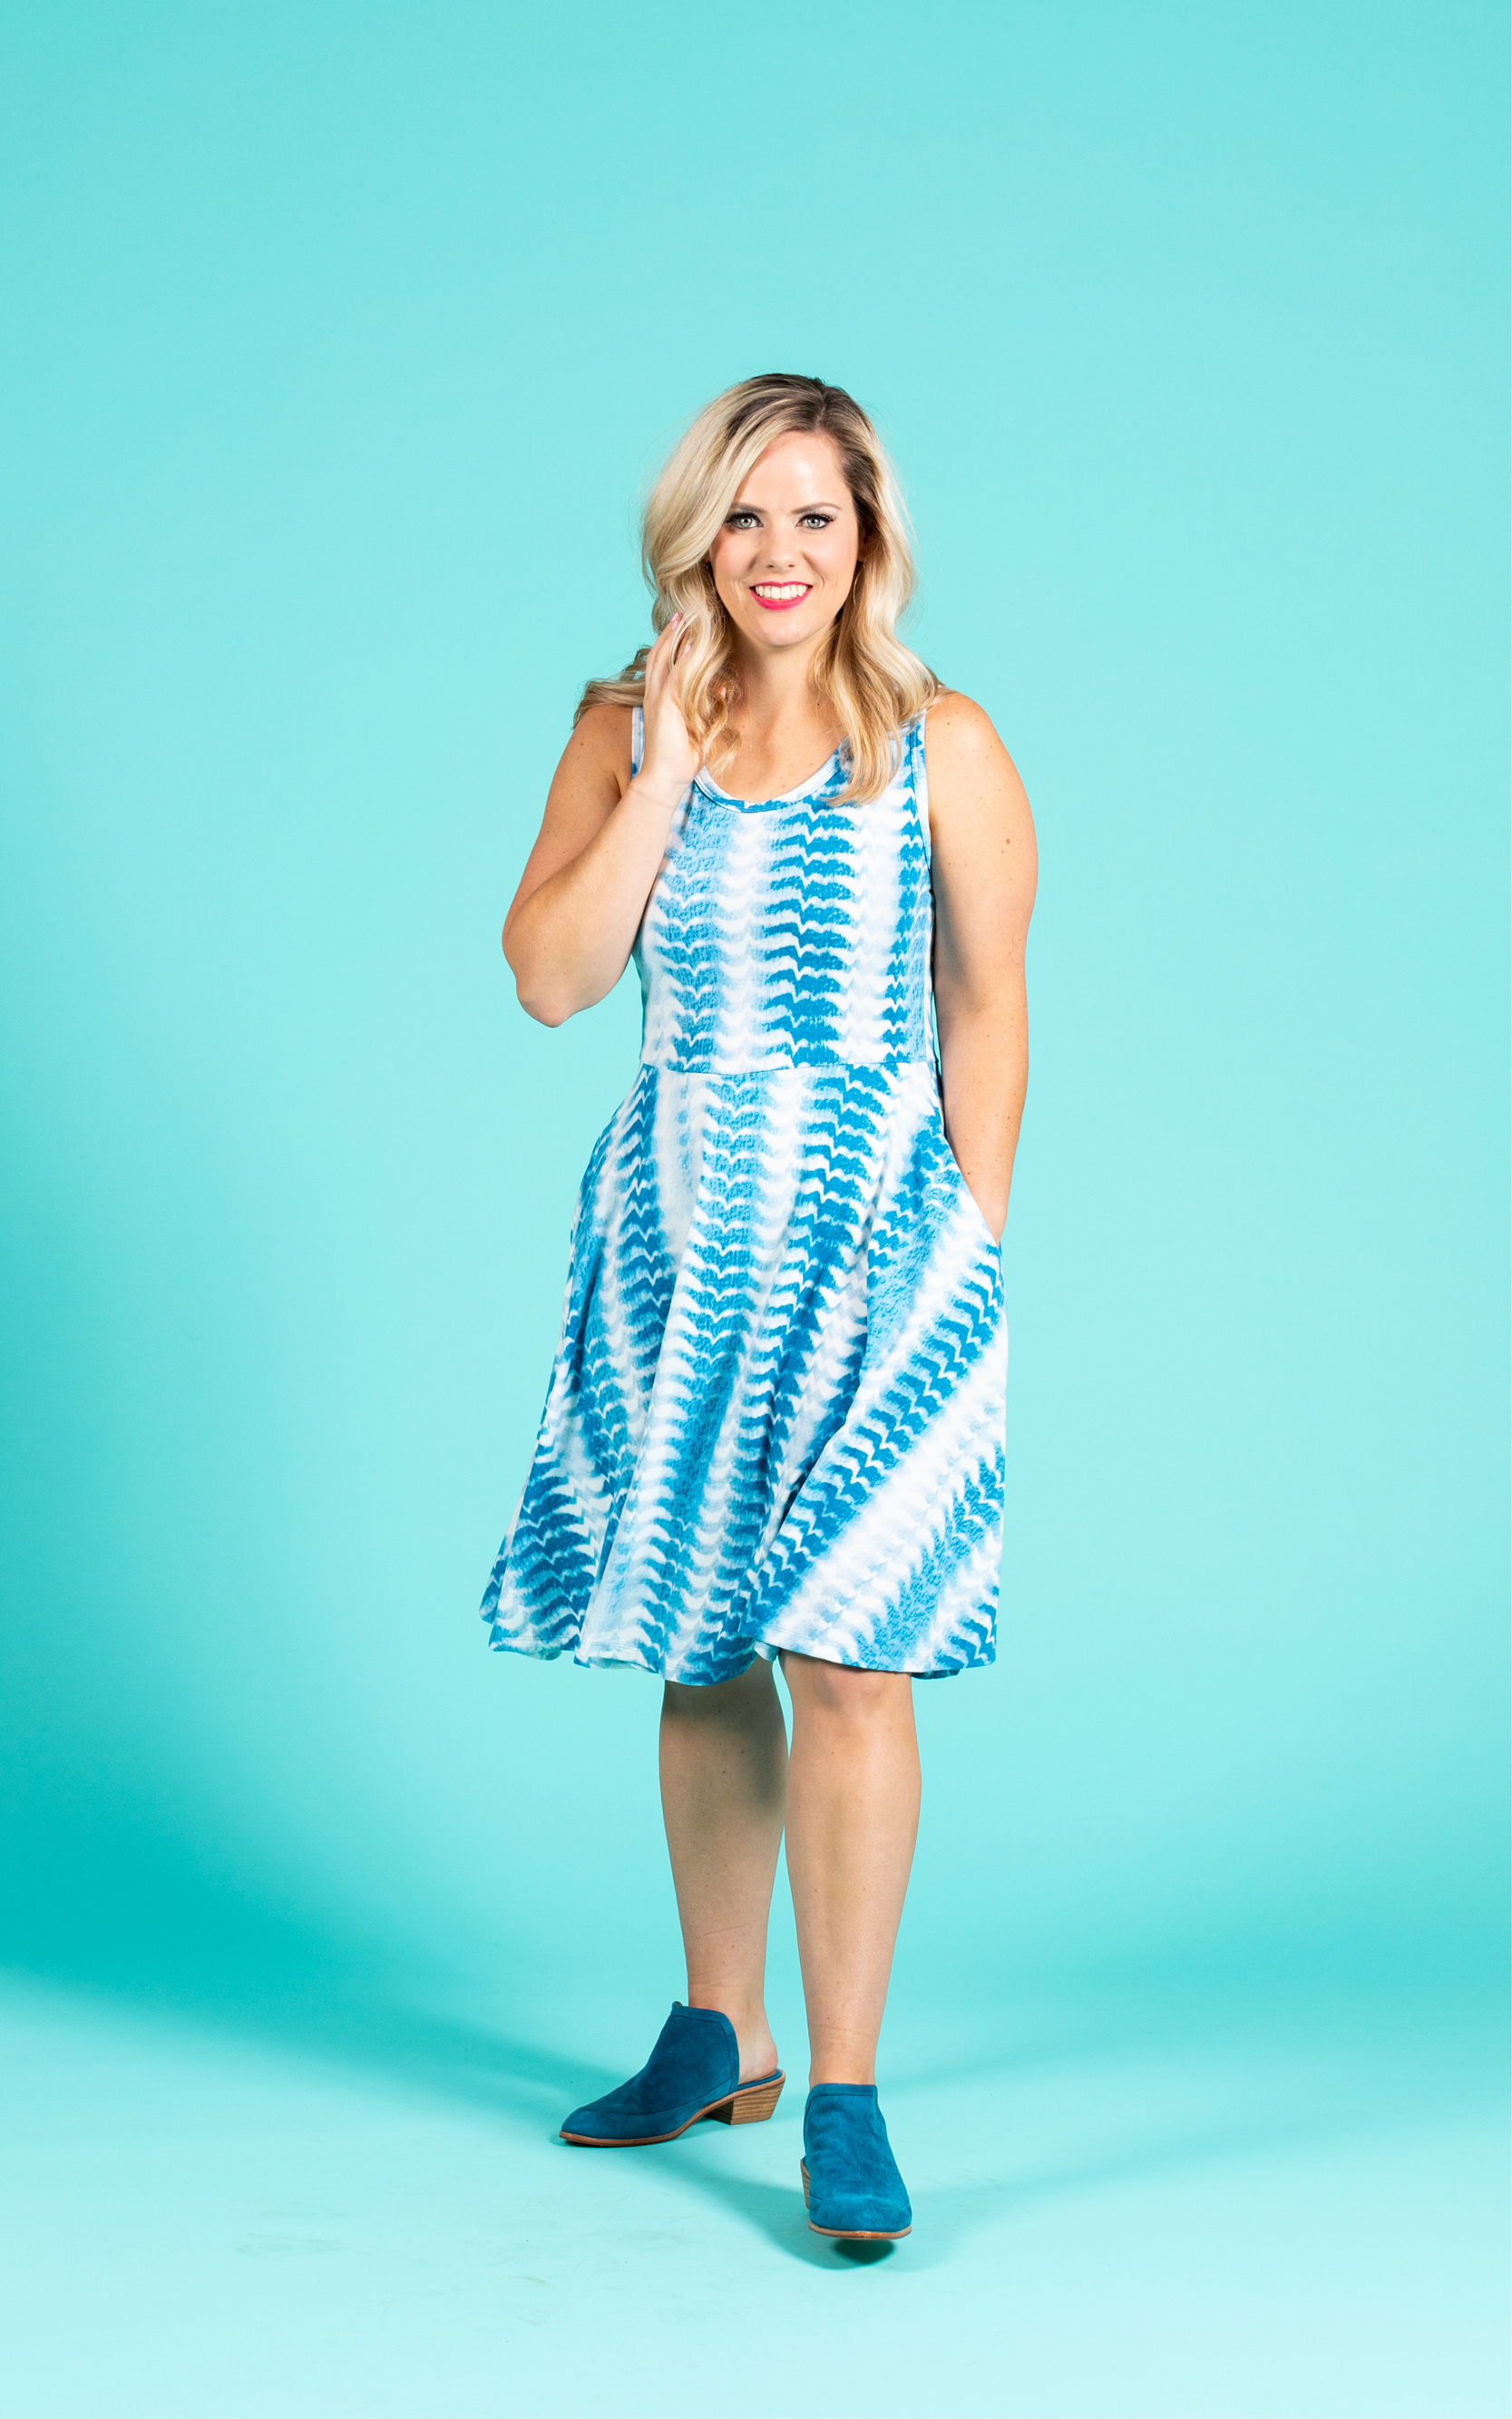 LULAROE-SLEEVELESS-DRESS-NICKI-A LINE SKIRT-BLUE AND WHITE PRINT.jpg